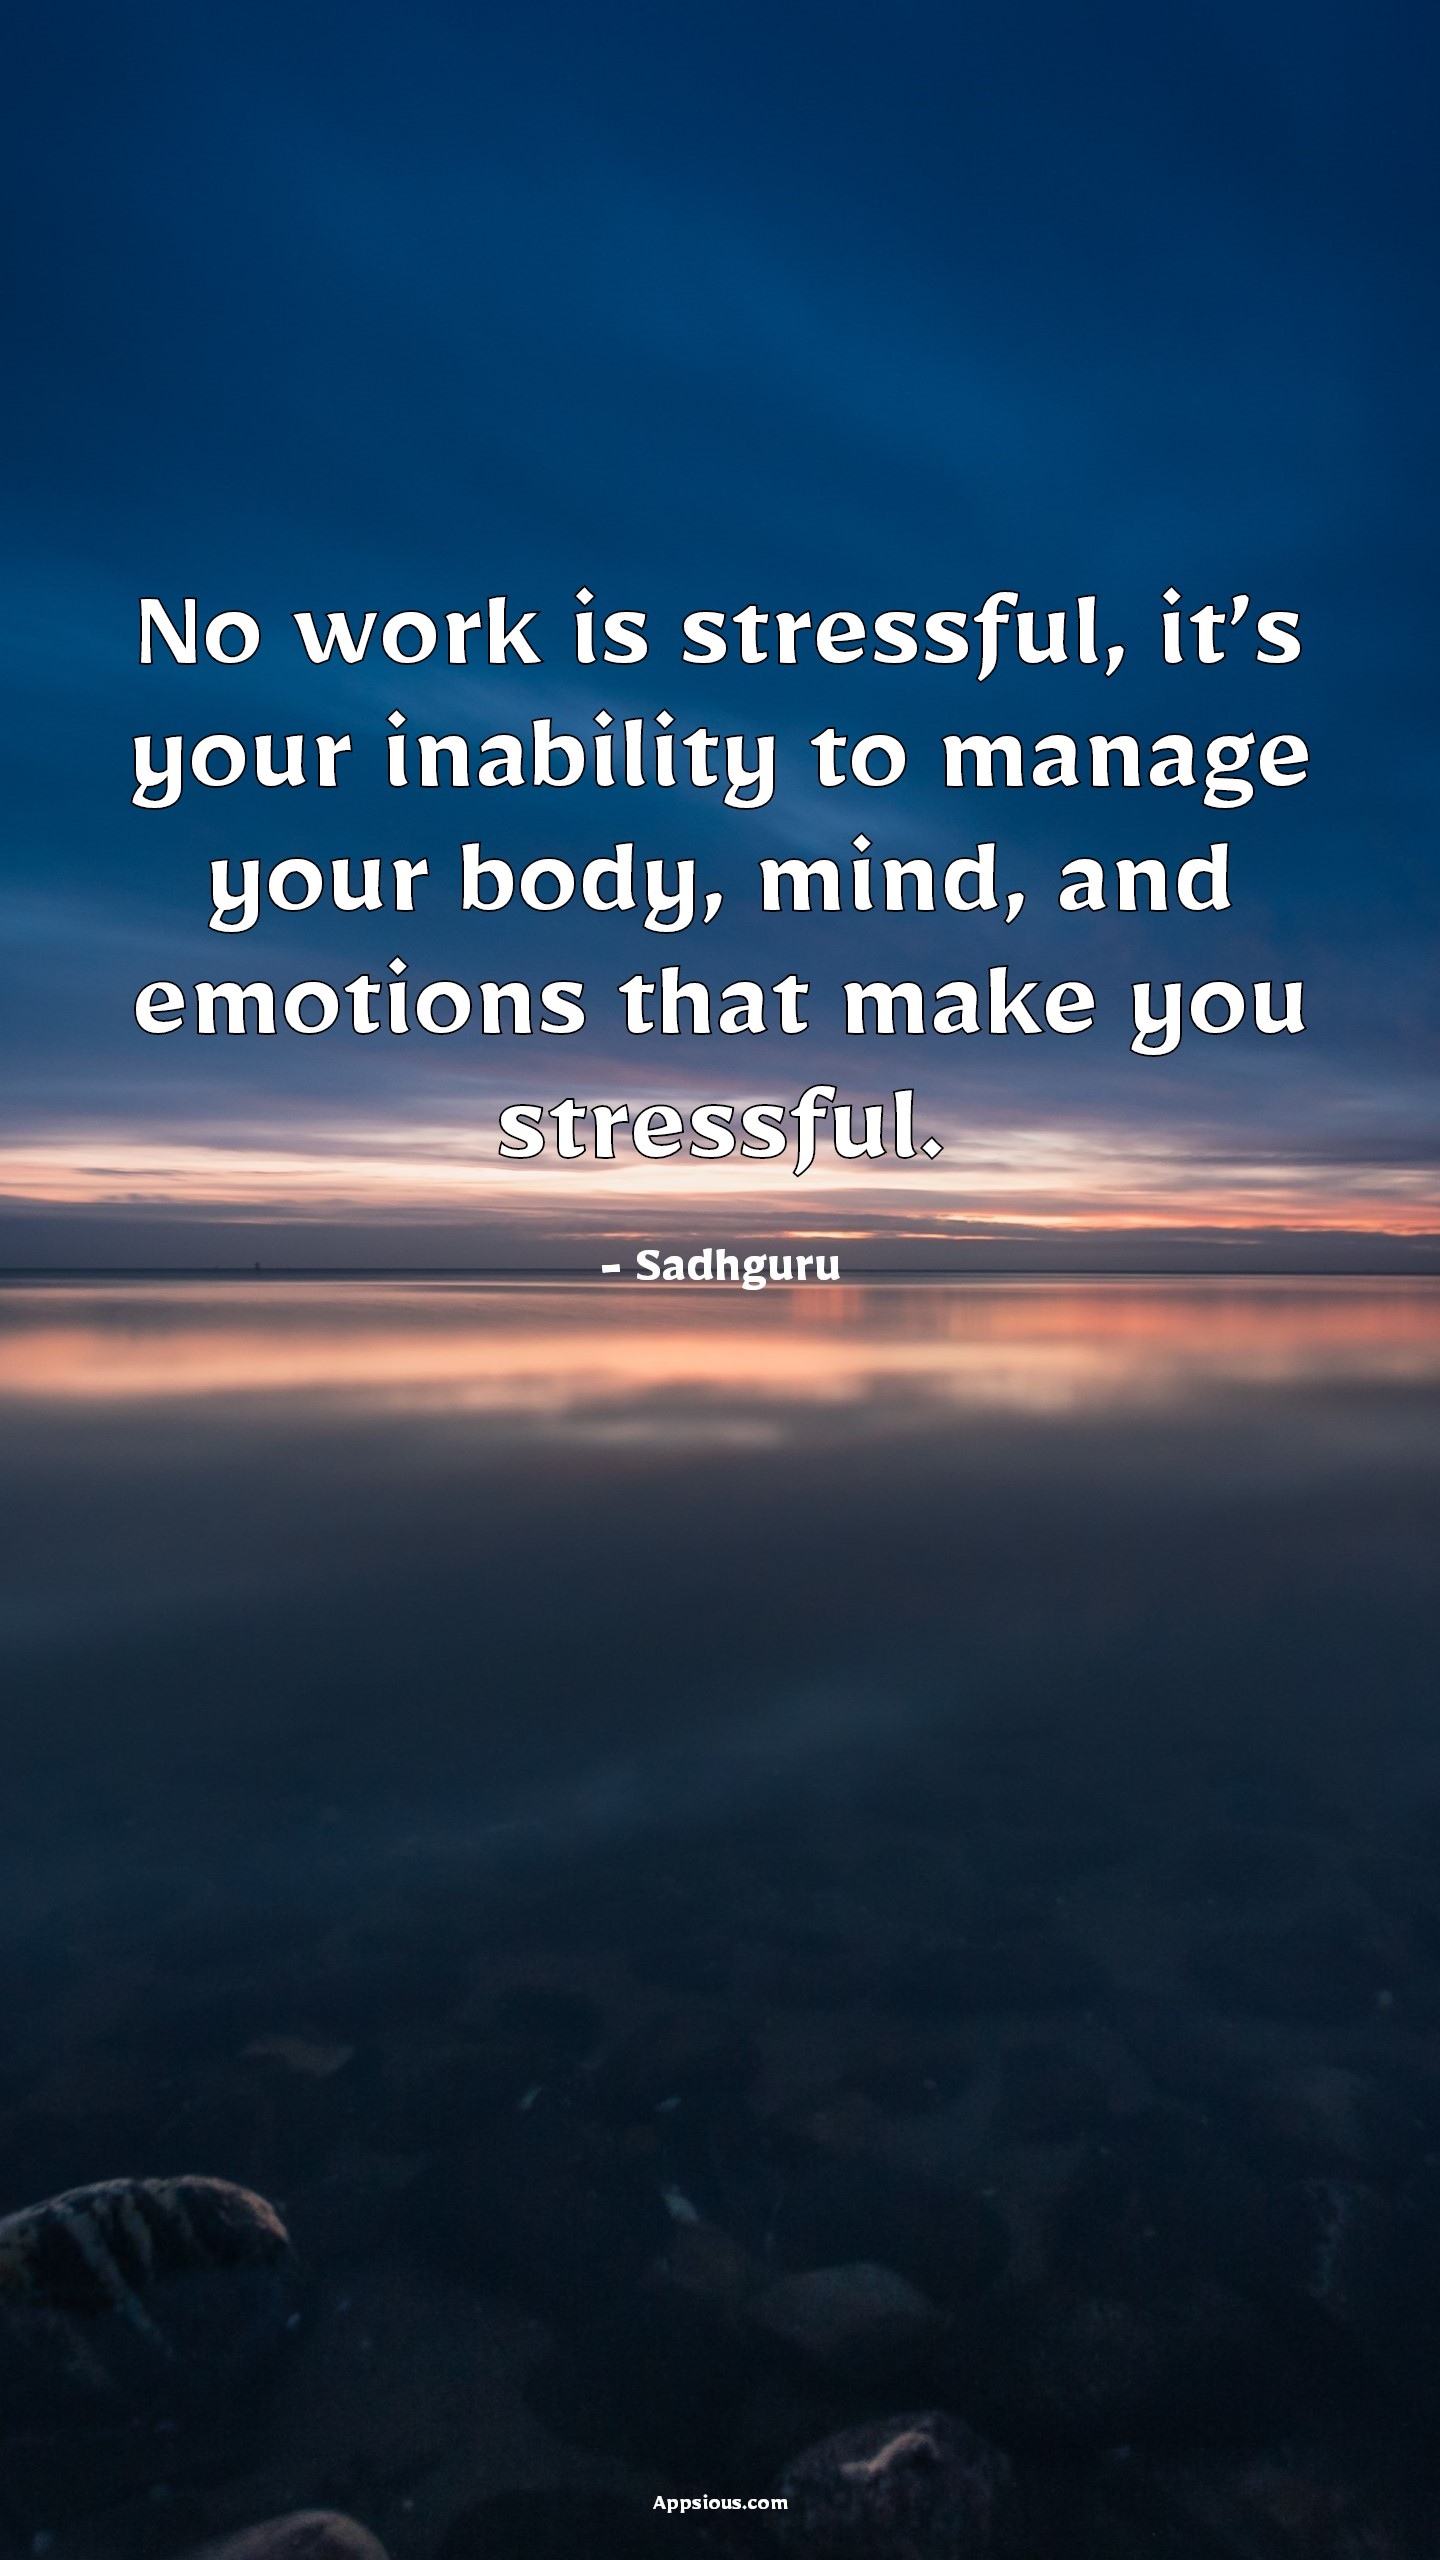 No work is stressful, it's your inability to manage your body, mind, and emotions that make you stressful.